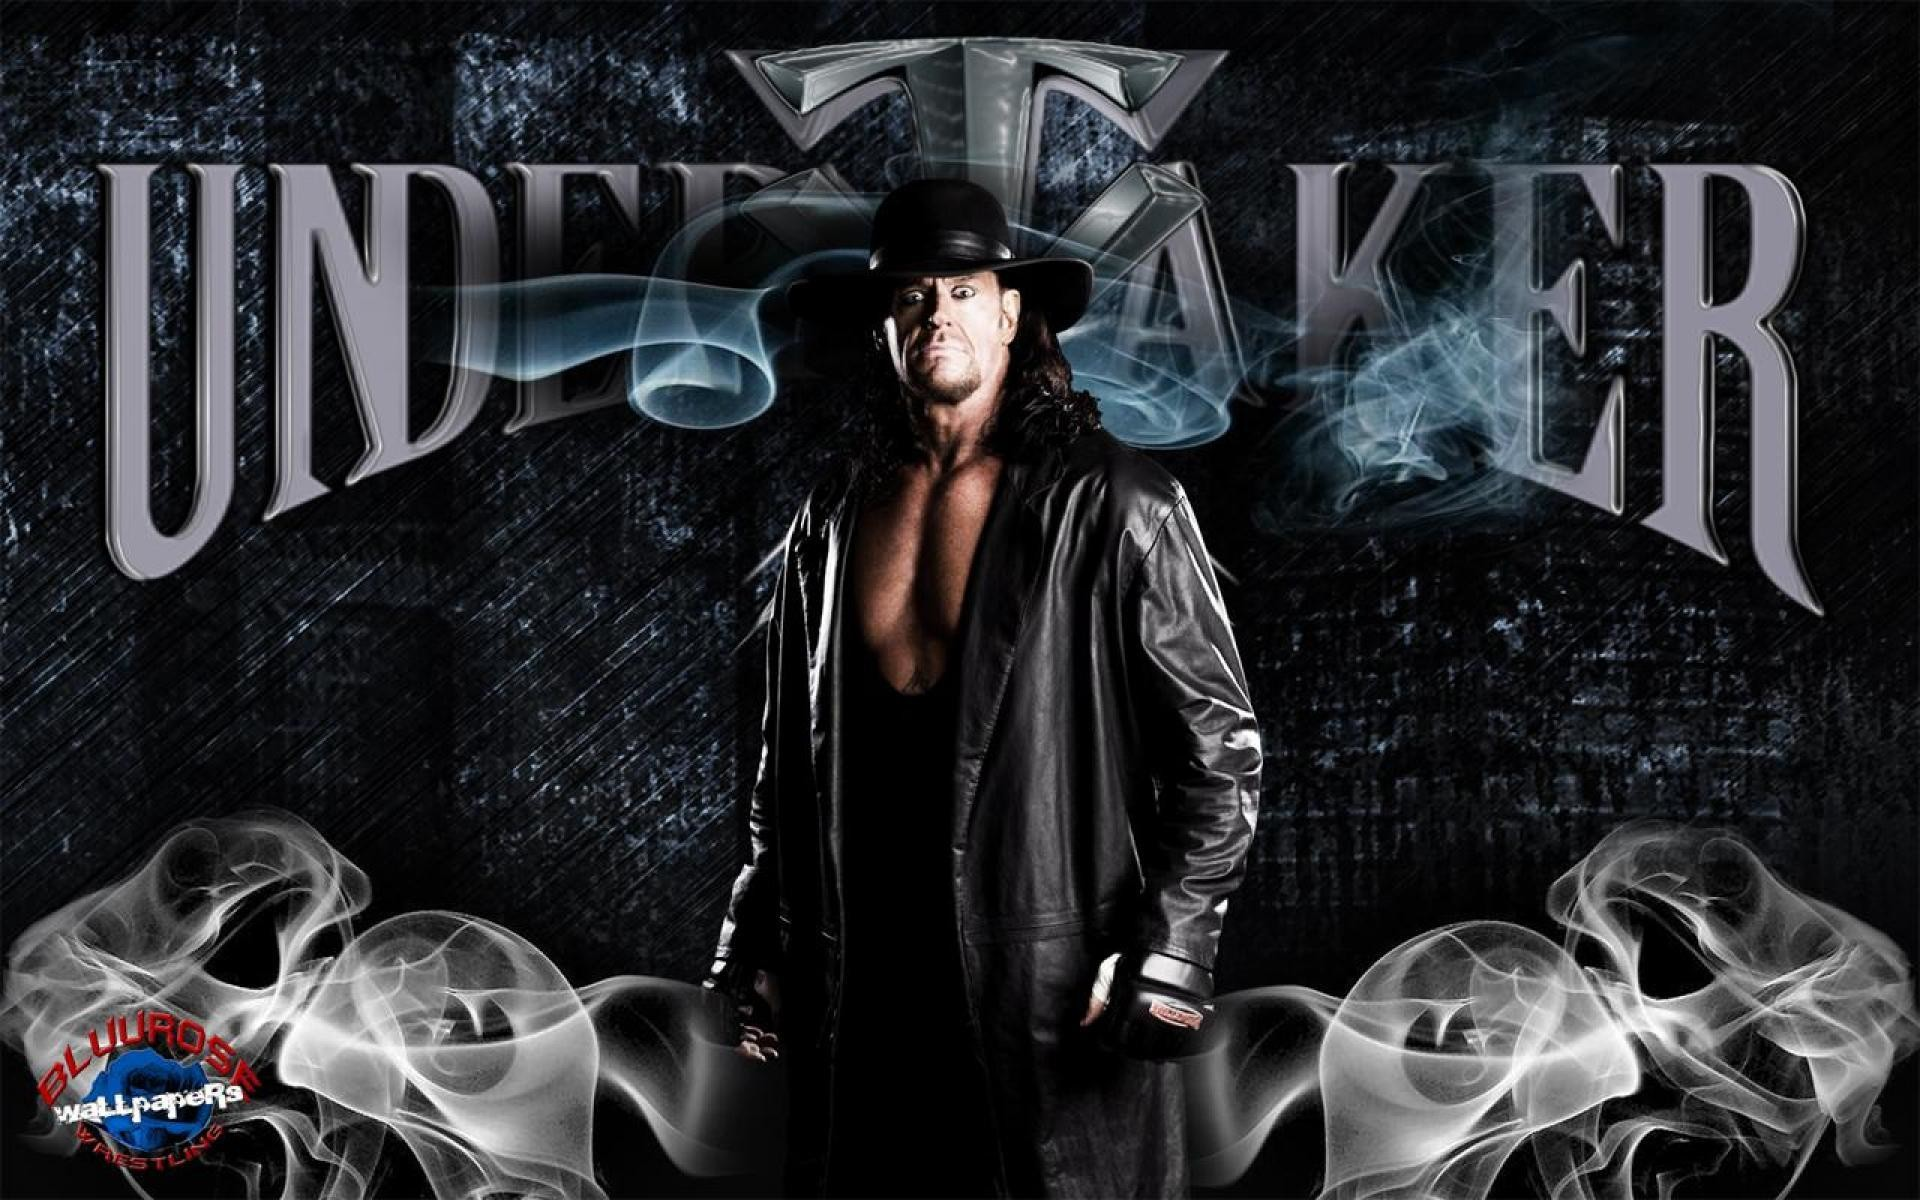 Check Out Undertaker WWE